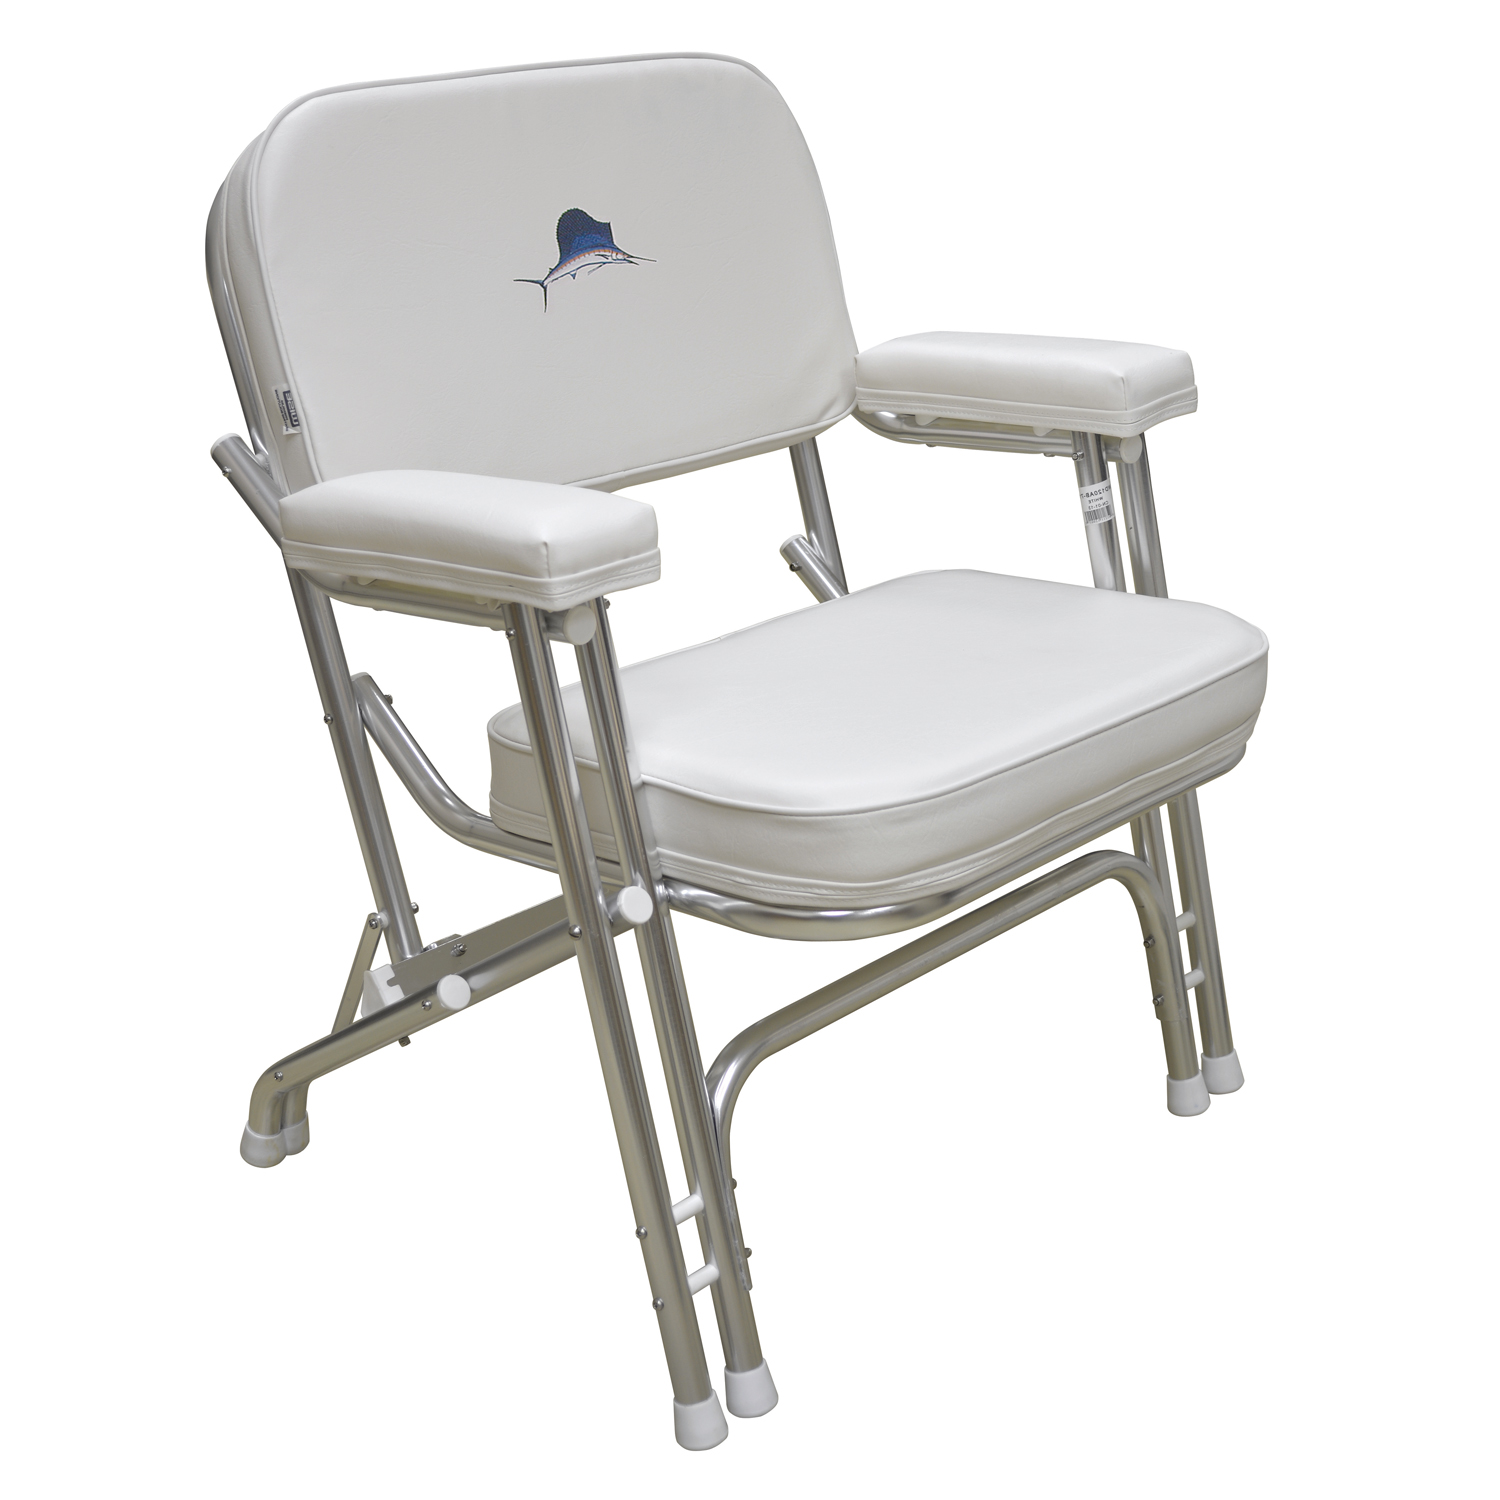 folding chair embroidered swivel post bushing wise 8wd119 710 deck with marlin logo walmart com